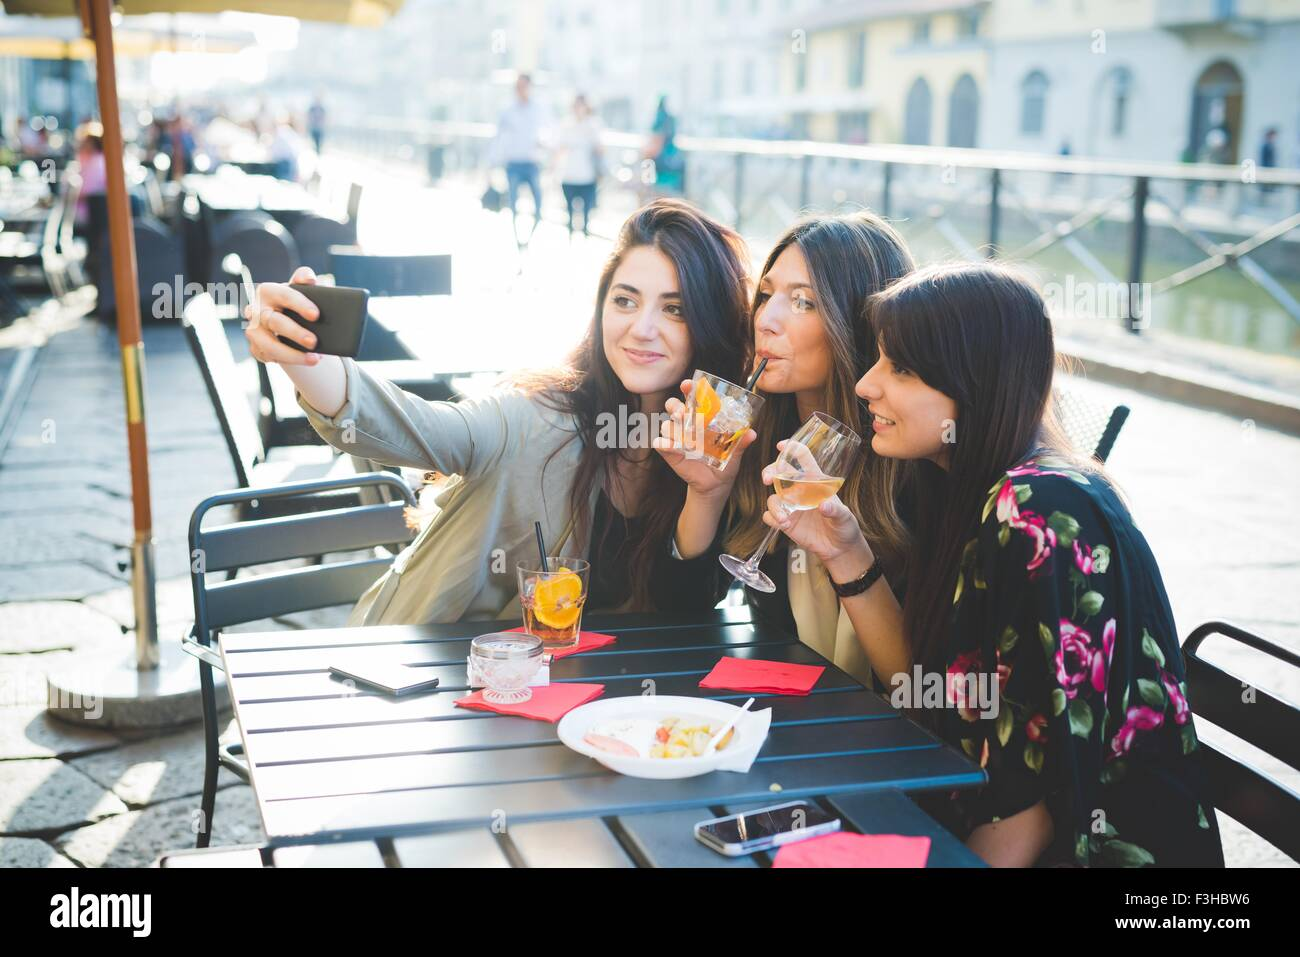 Three young women posing for smartphone selfie at waterfront cafe - Stock Image